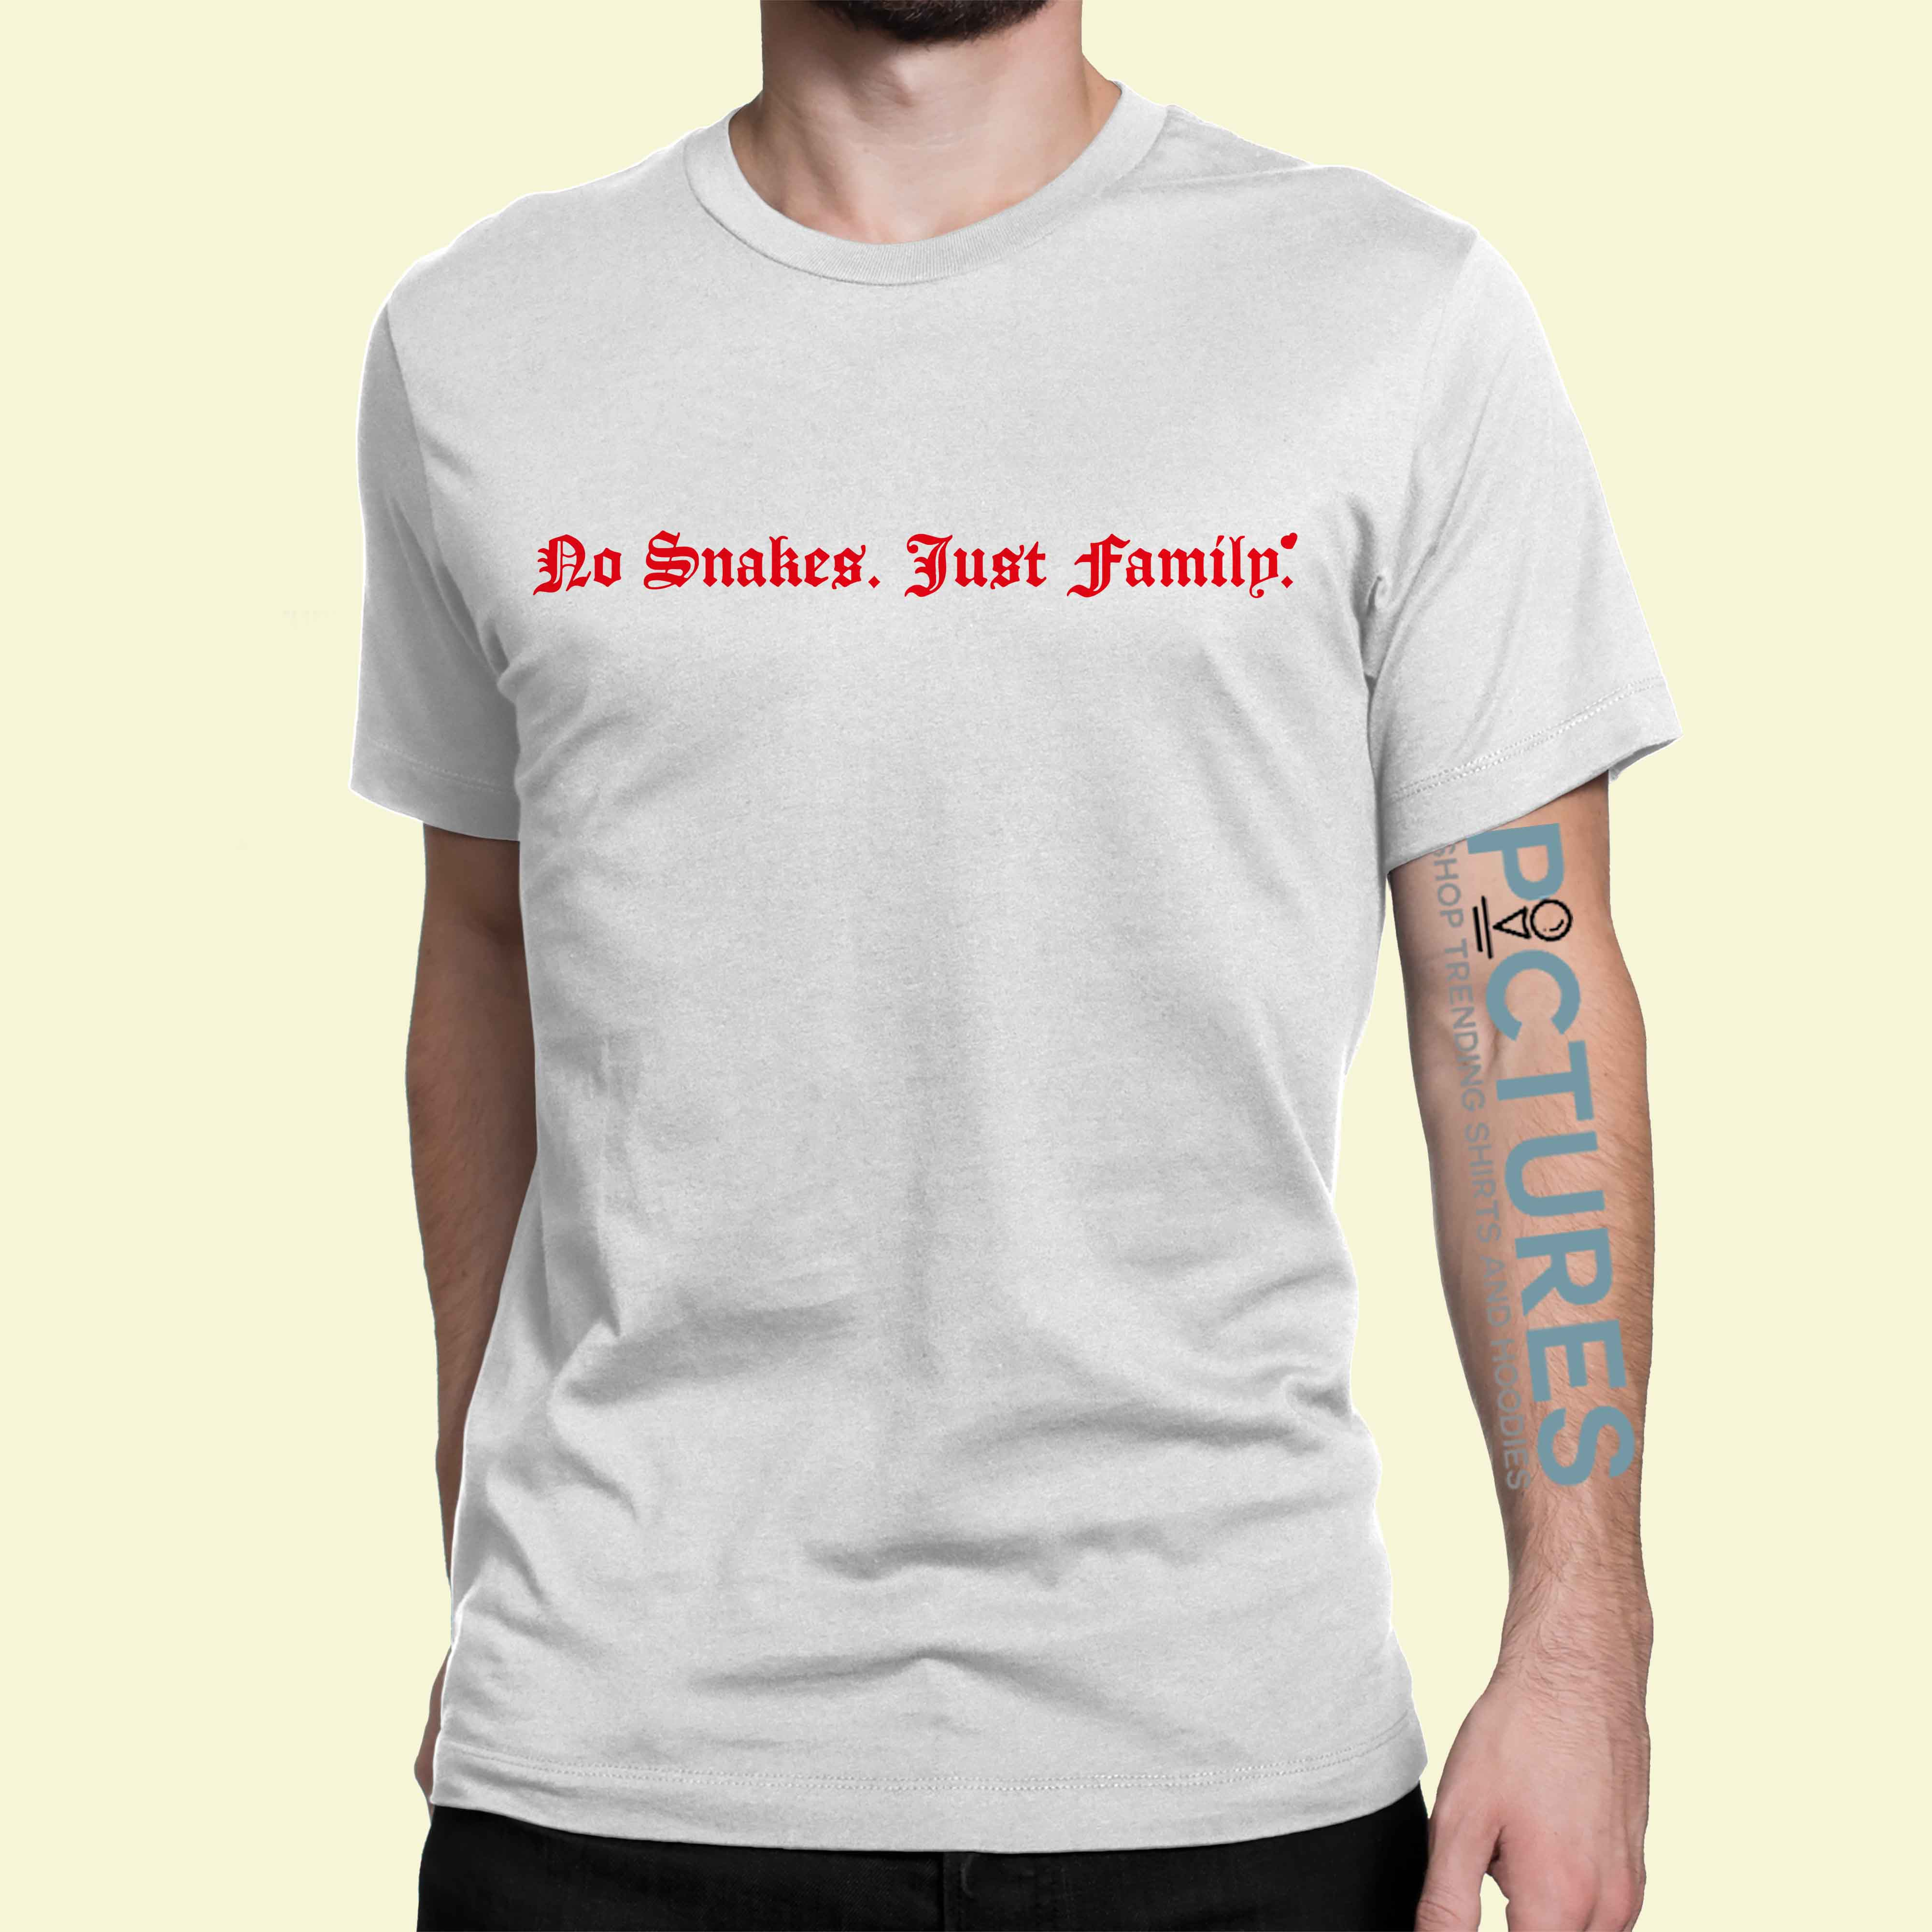 No snakes just family shirt